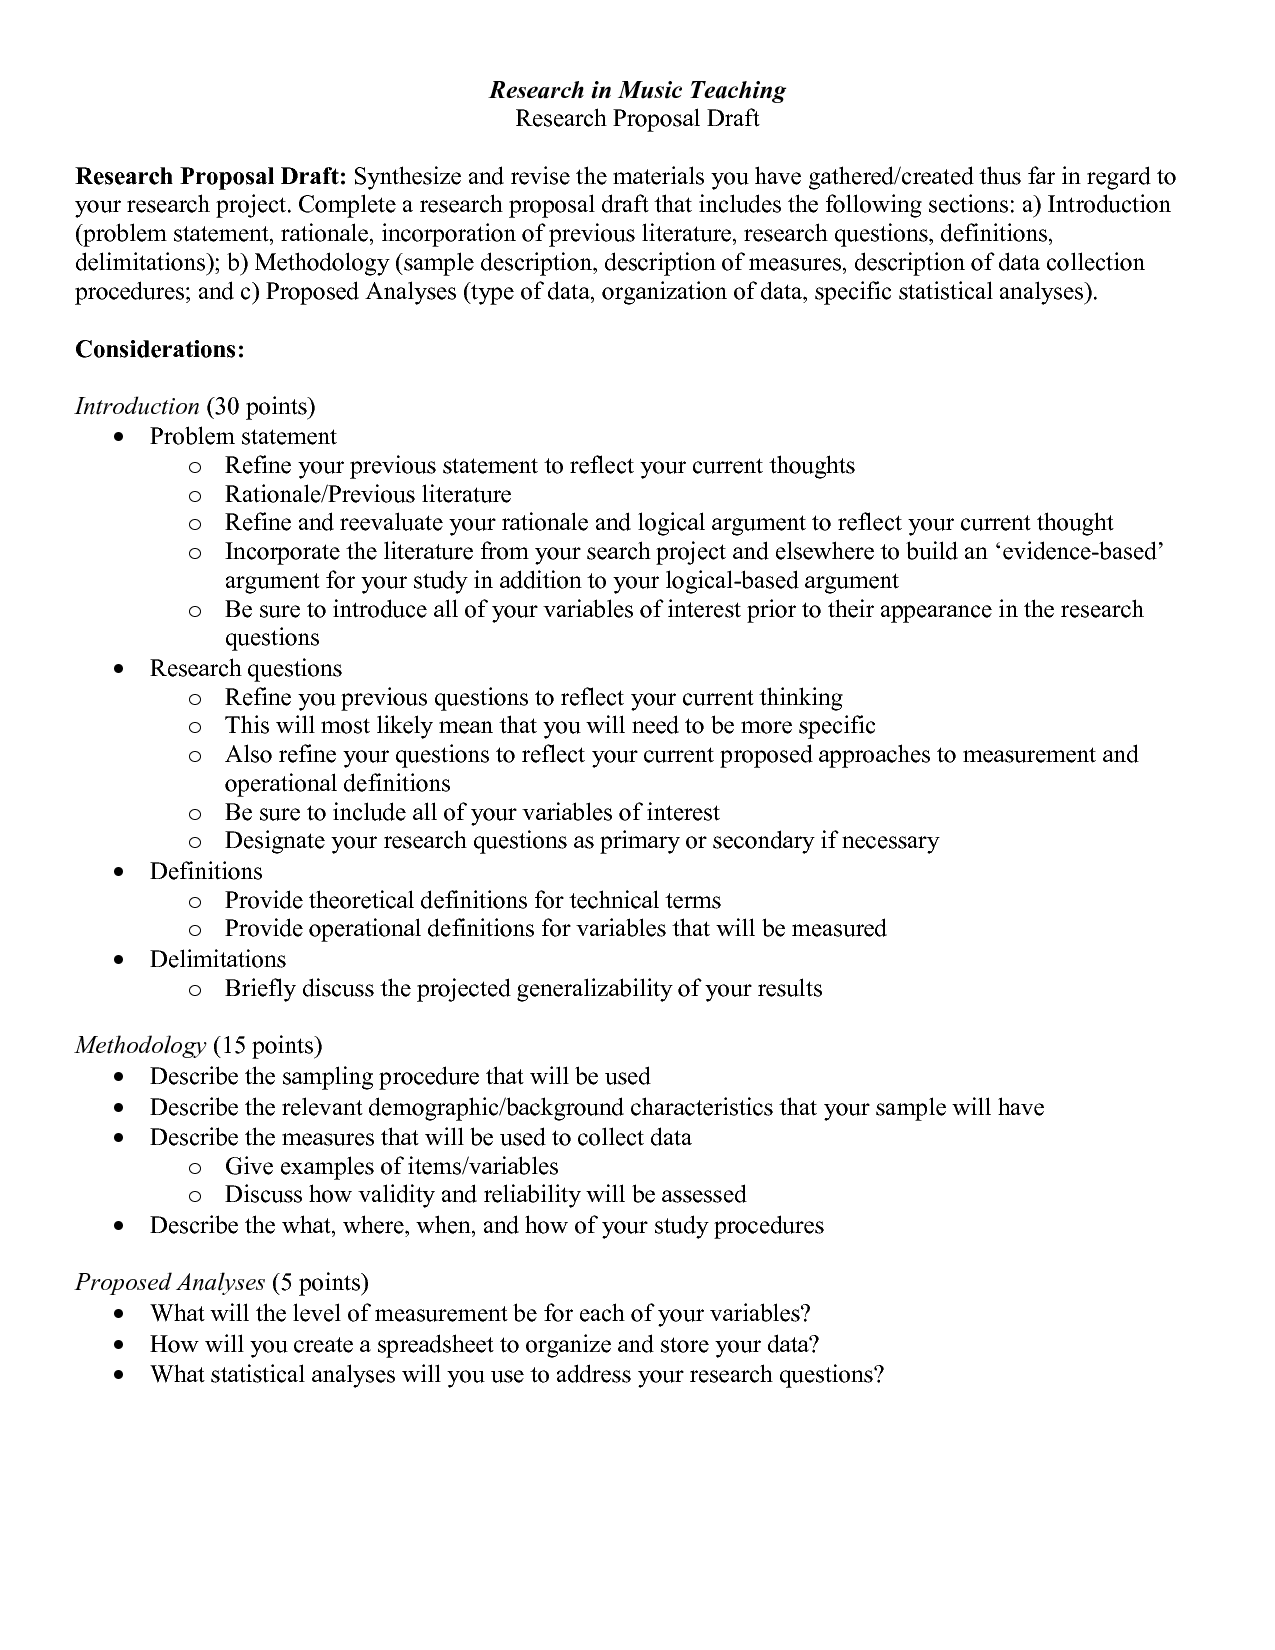 Futurism Essay Writing Methodology For Research Proposal A Stitch In Time Saves Nine Essay also Write My College Essay Writing Methodology For Research Proposal  Research  Pinterest  Essay For School Uniforms